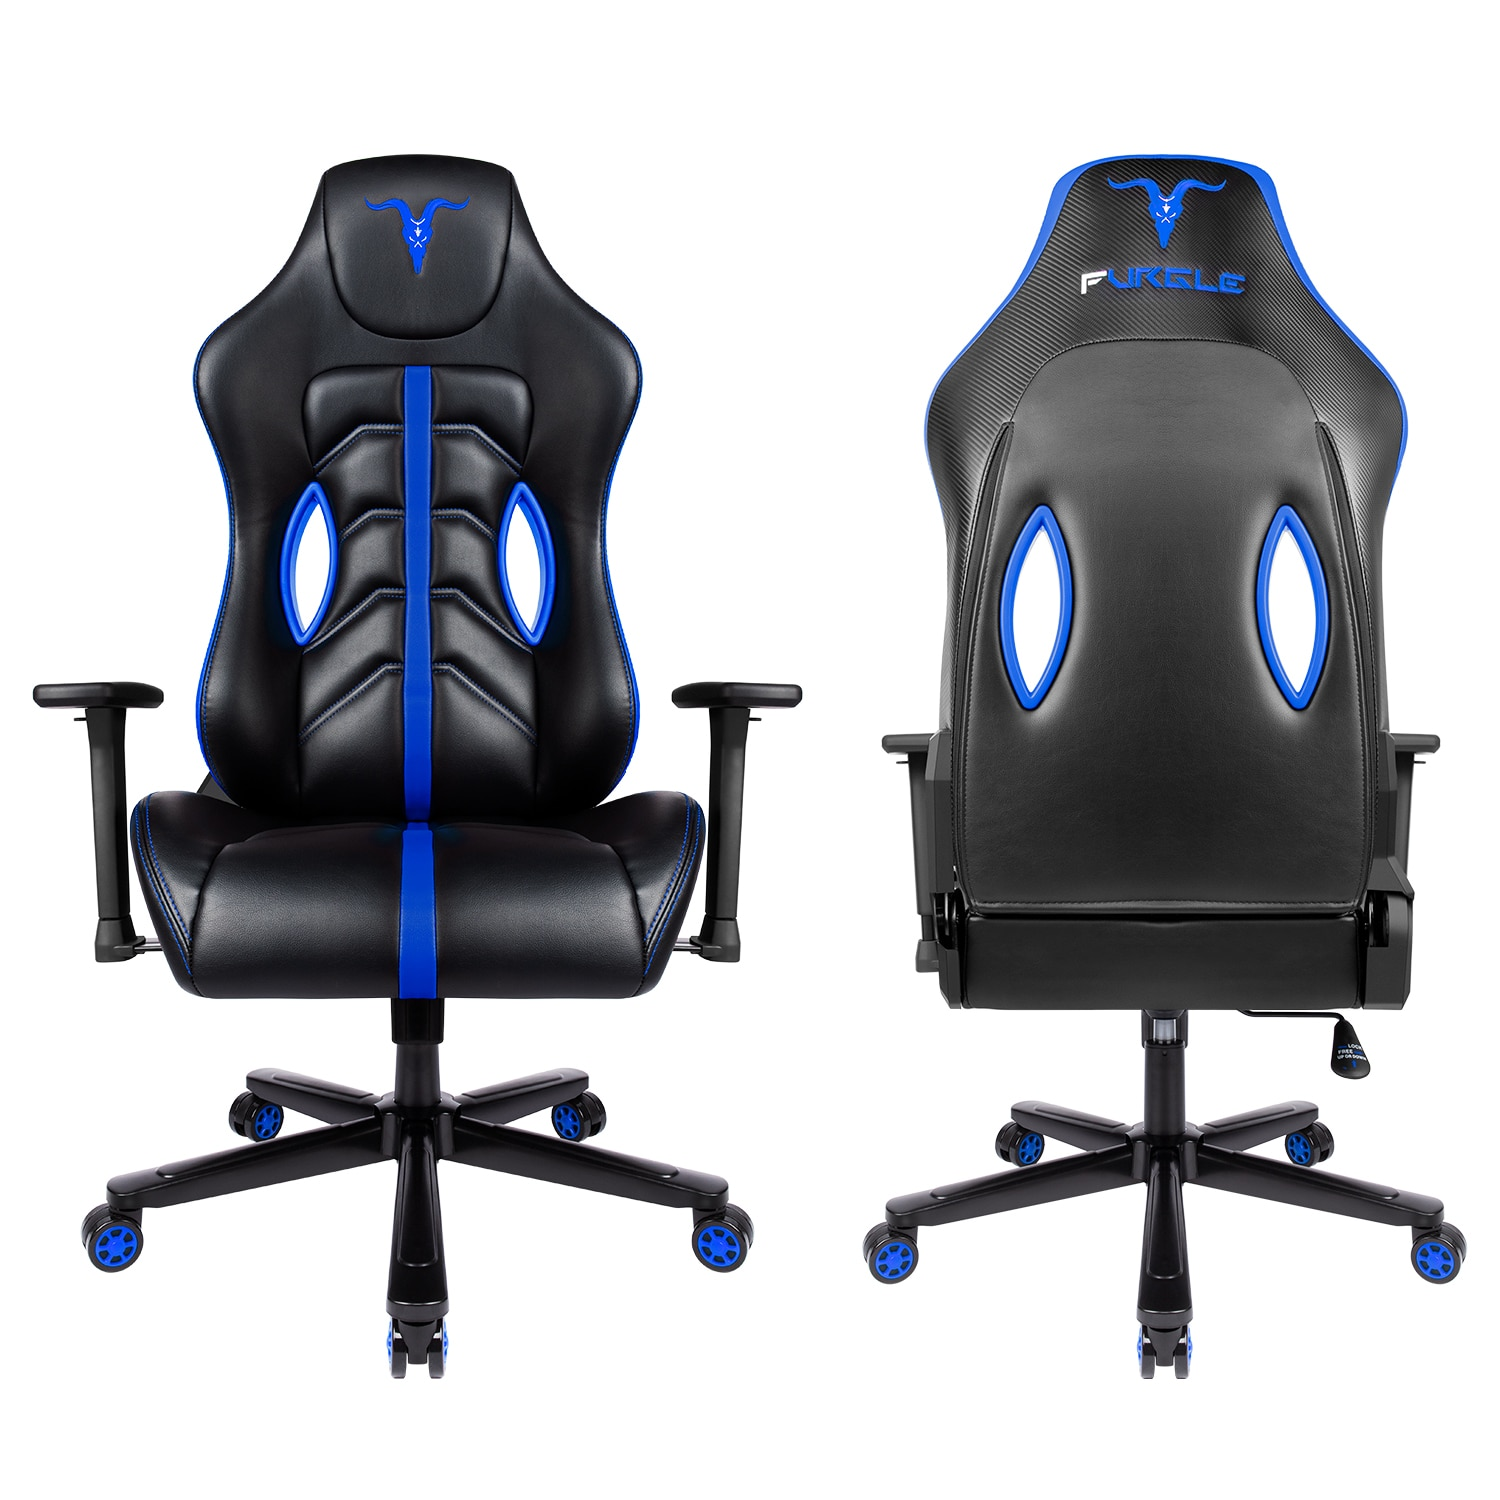 H0f1c78c1f6324694ba3166de1ae577adf - Furgle GPRO Office Chair Memory Foam Gaming Chair Adjustable Tilt Angle 4D Armrest Ergonomic High-Back Leather Computer Chairs